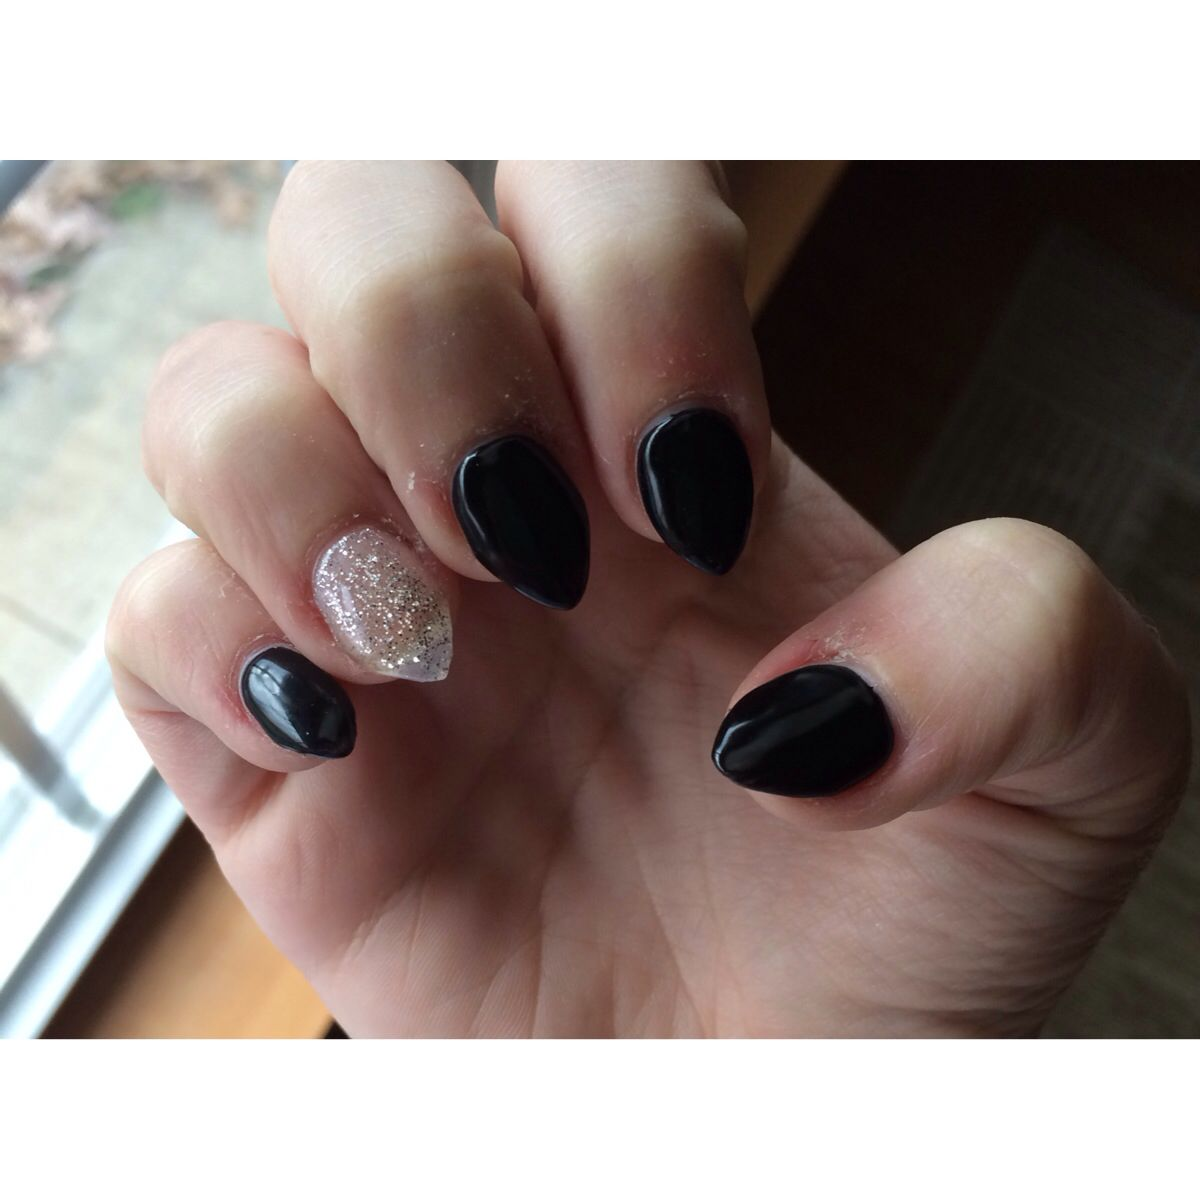 Pointed Or Sharp Black Acrylic Nails With Glitter